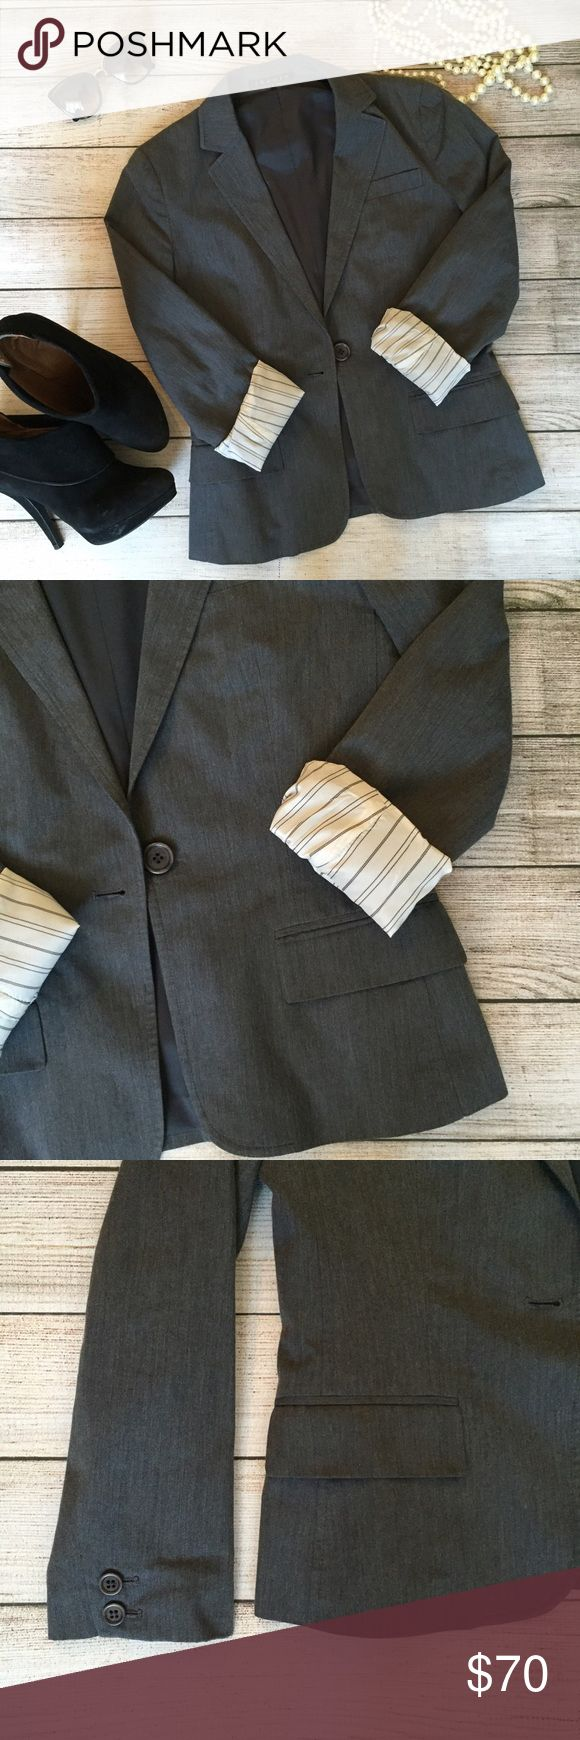 Theory Blazer Classic silhouette. One button closure. Fully lined. Cotton blend. Excellent condition. 🚫NO TRADES/NO MODELING🚫 Theory Jackets & Coats Blazers